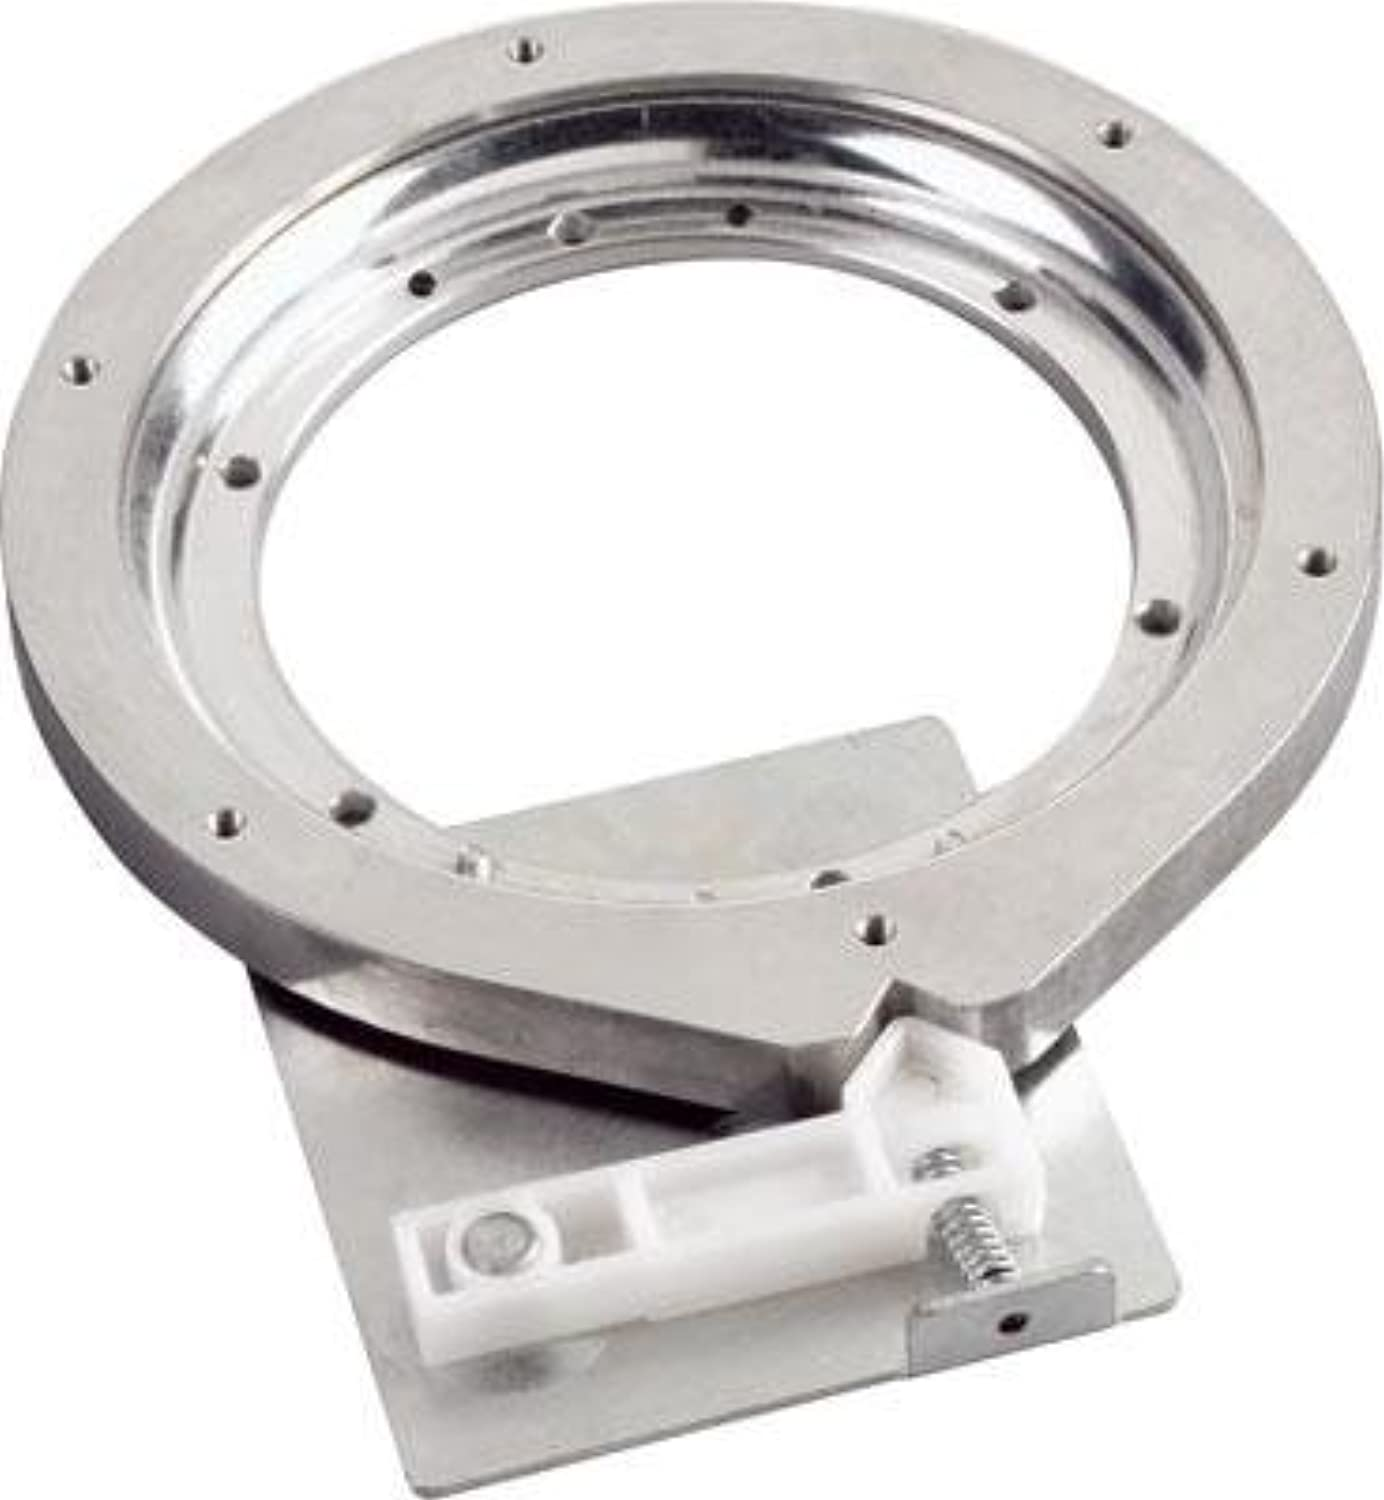 Rev-A-Shelf 7in Lazy Susan Bearing with Stop